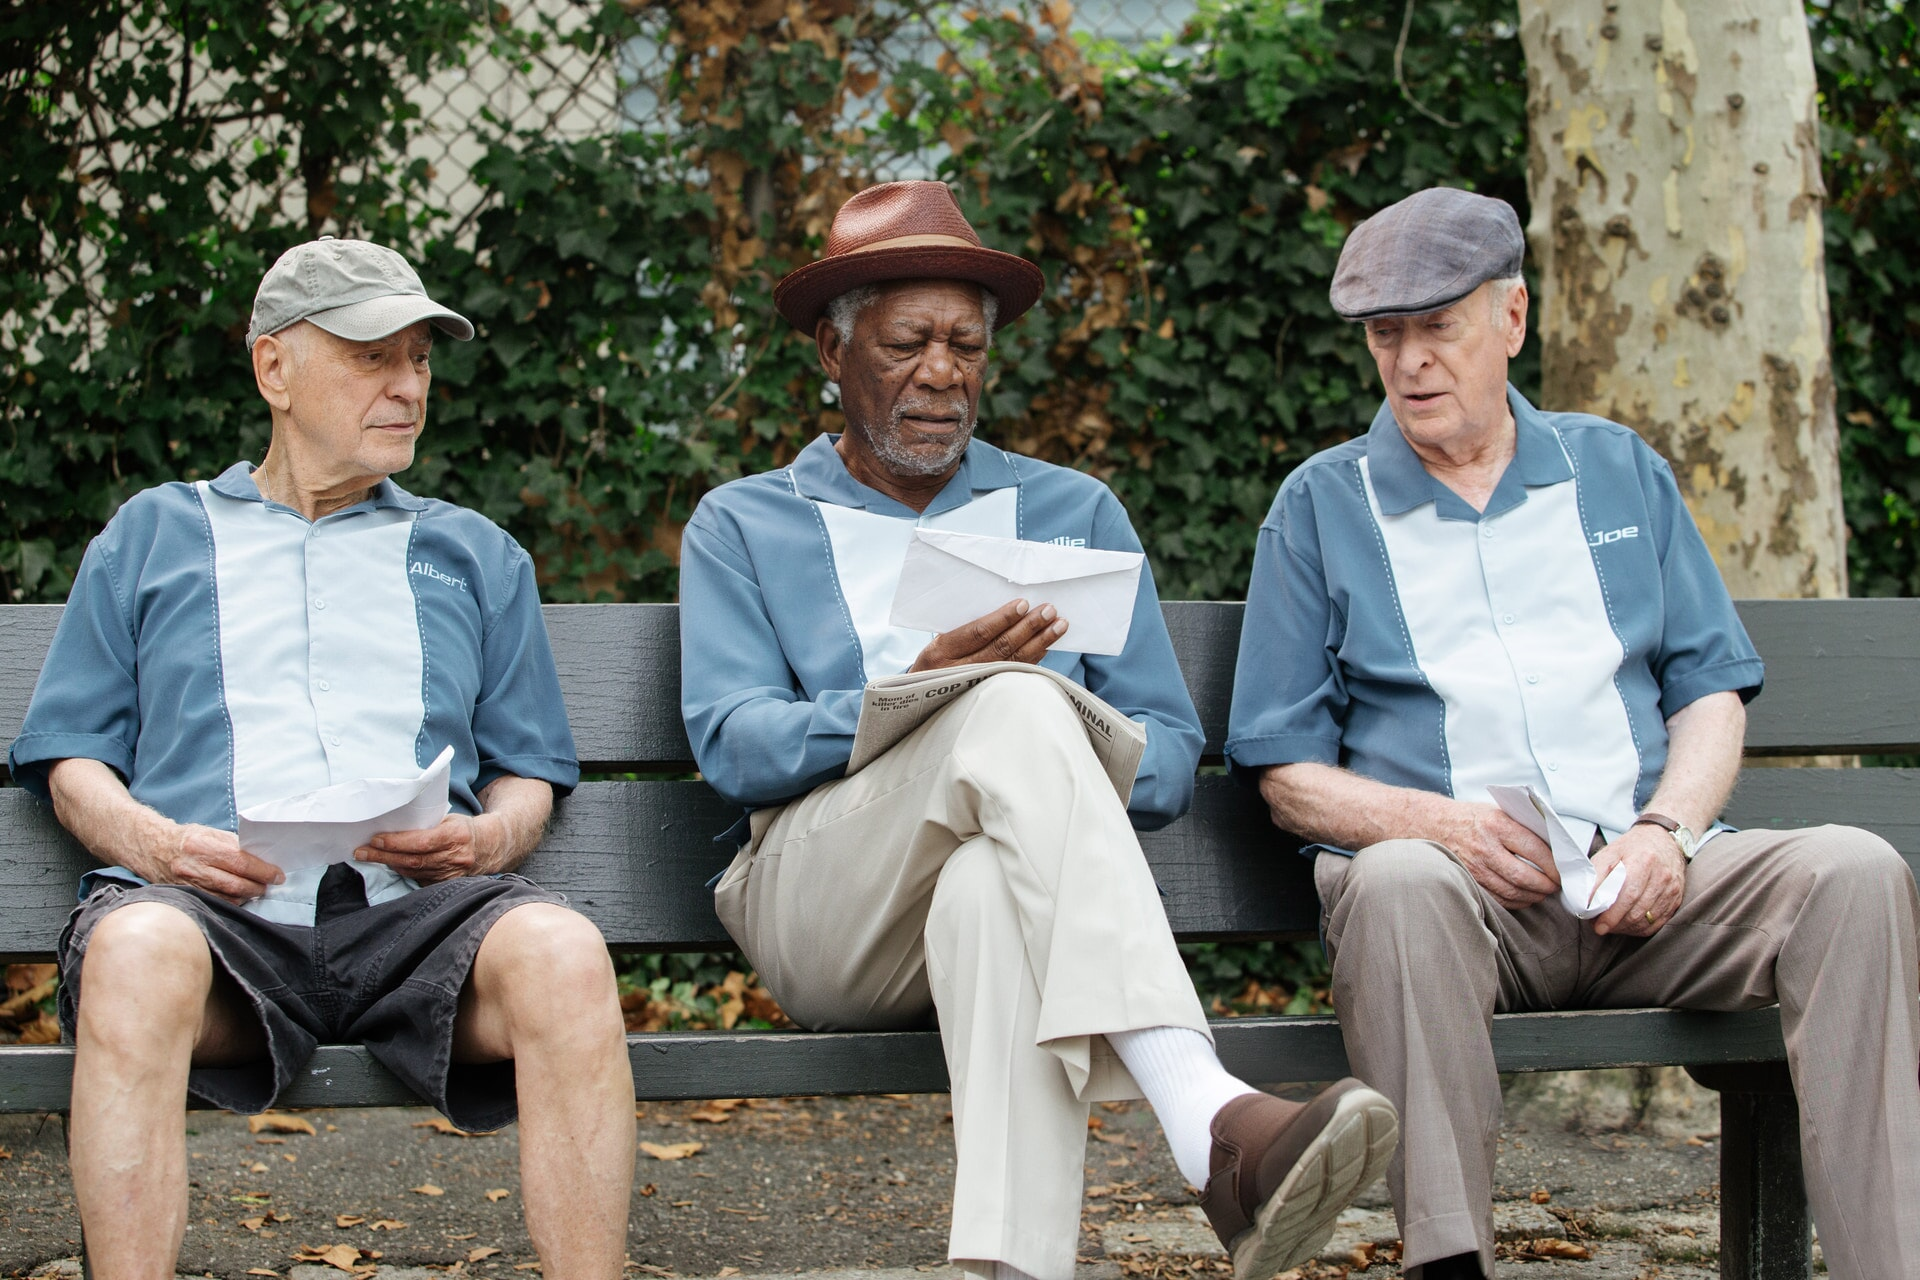 """ALAN ARKIN as Al, MORGAN FREEMAN as Willie and MICHAEL CAINE as Joe in the New Line Cinema comedy """"GOING IN STYLE,"""" a Warner Bros. Pictures release."""